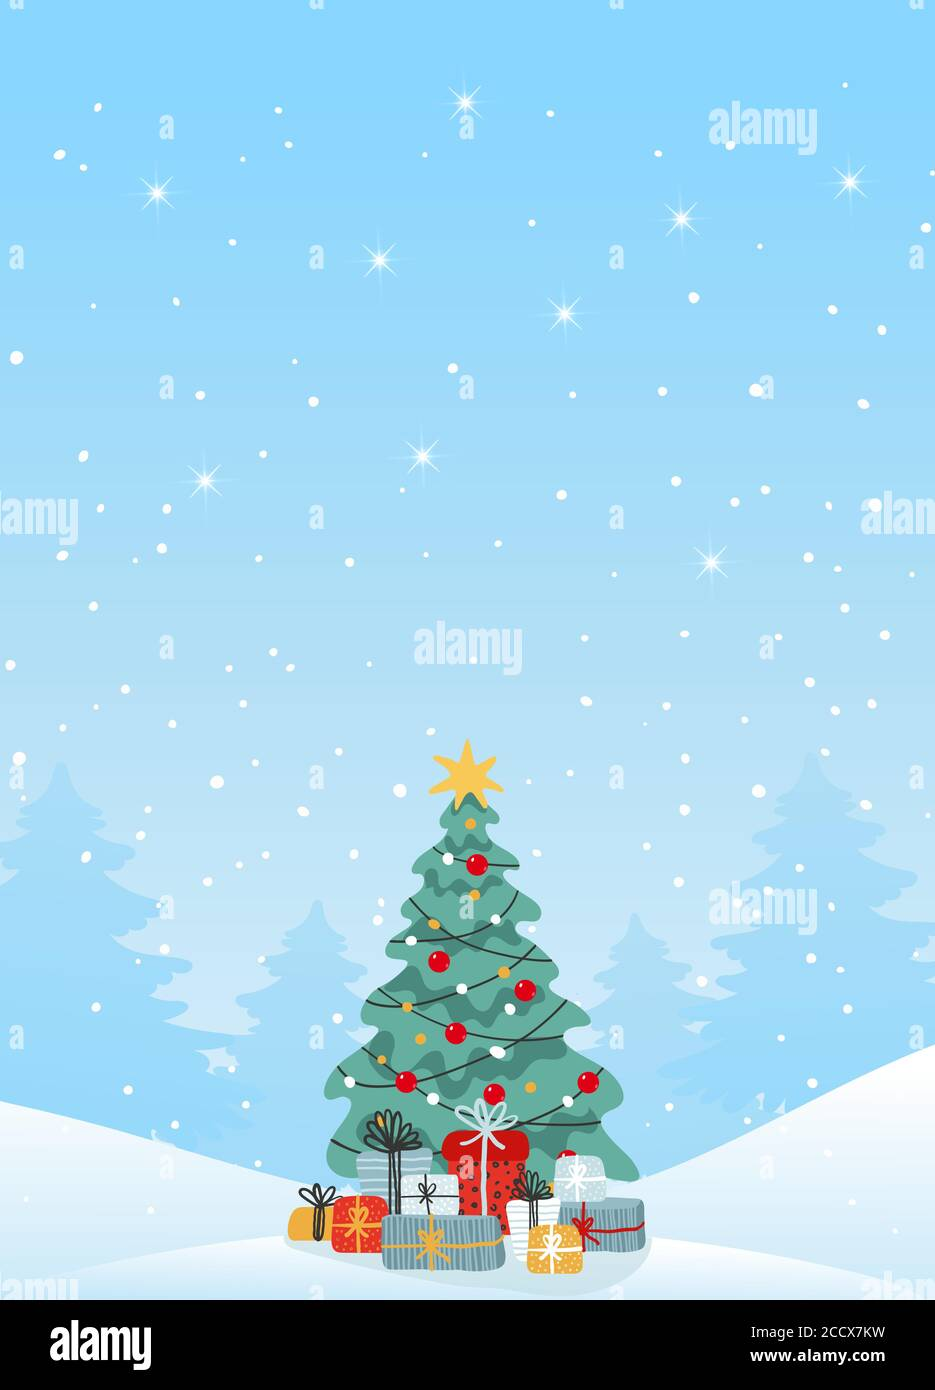 Modern Christmas Card With Copy Space Decorated Christmas Tree With Gifts On The Background Of A Winter Landscape Winter Snowfall Flat Vector Illustration For Design Stock Vector Image Art Alamy